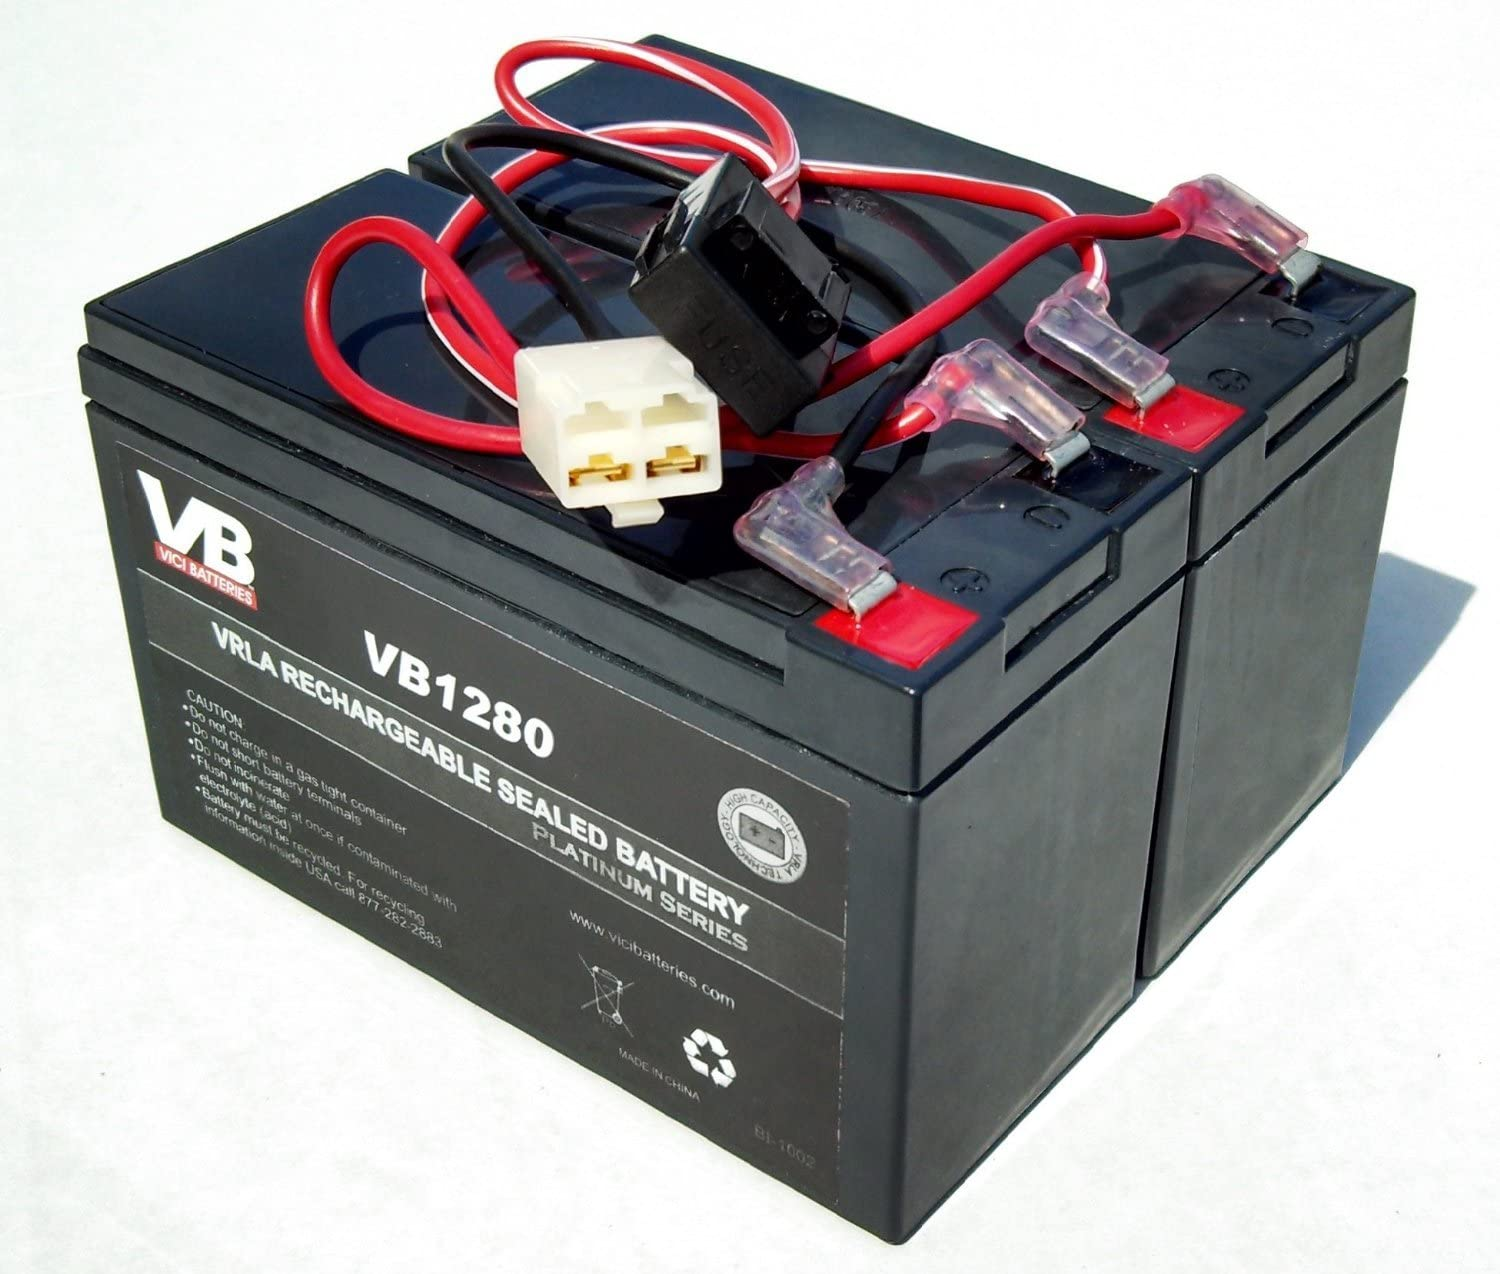 [NRIO_4796]   Amazon.com : VICI Battery Razor Dirt Quad Battery Replacement - Includes Wiring  Harness (8 ah Capacity - 24 Volt System) TM : Sports Scooter Batteries :  Sports & Outdoors   24 Volt Scooter Battery Wiring Diagram      Amazon.com